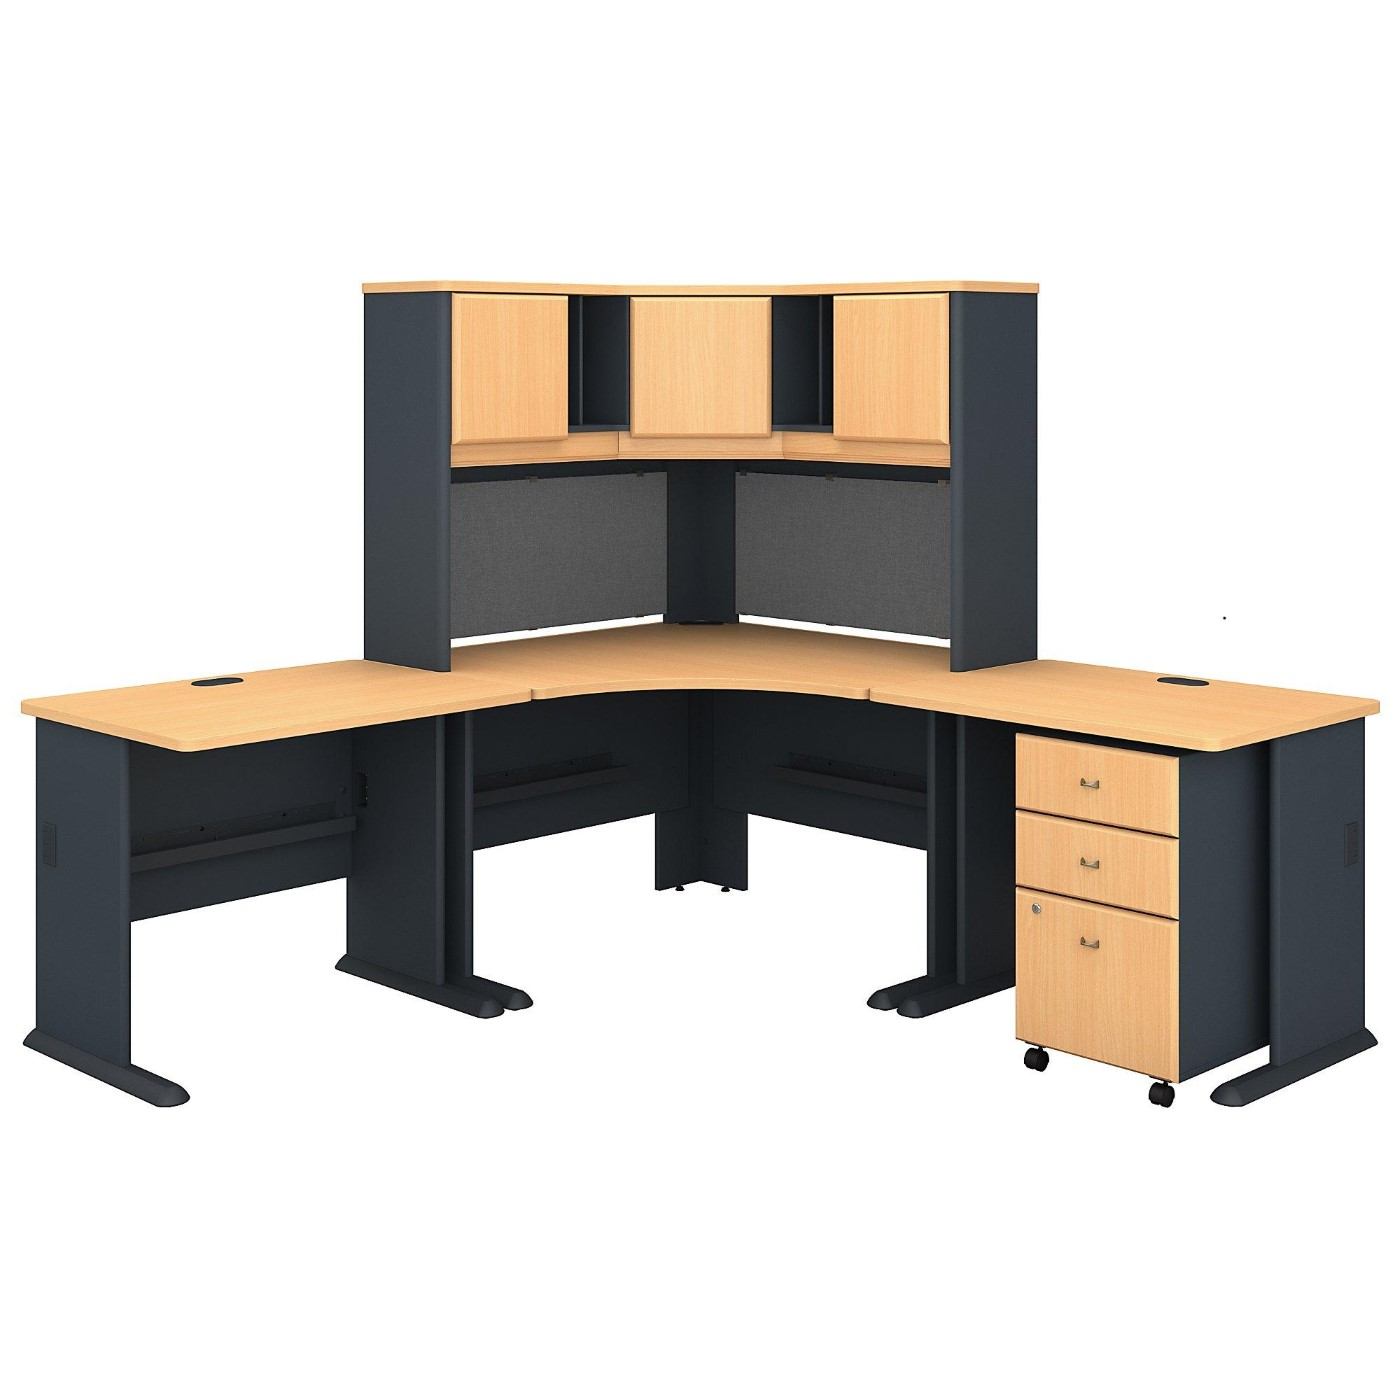 <font color=#c60><b>BUSH BUSINESS FURNITURE SERIES A 84W X 84D CORNER DESK WITH HUTCH AND MOBILE FILE CABINET. FREE SHIPPING</font></b></font></b>